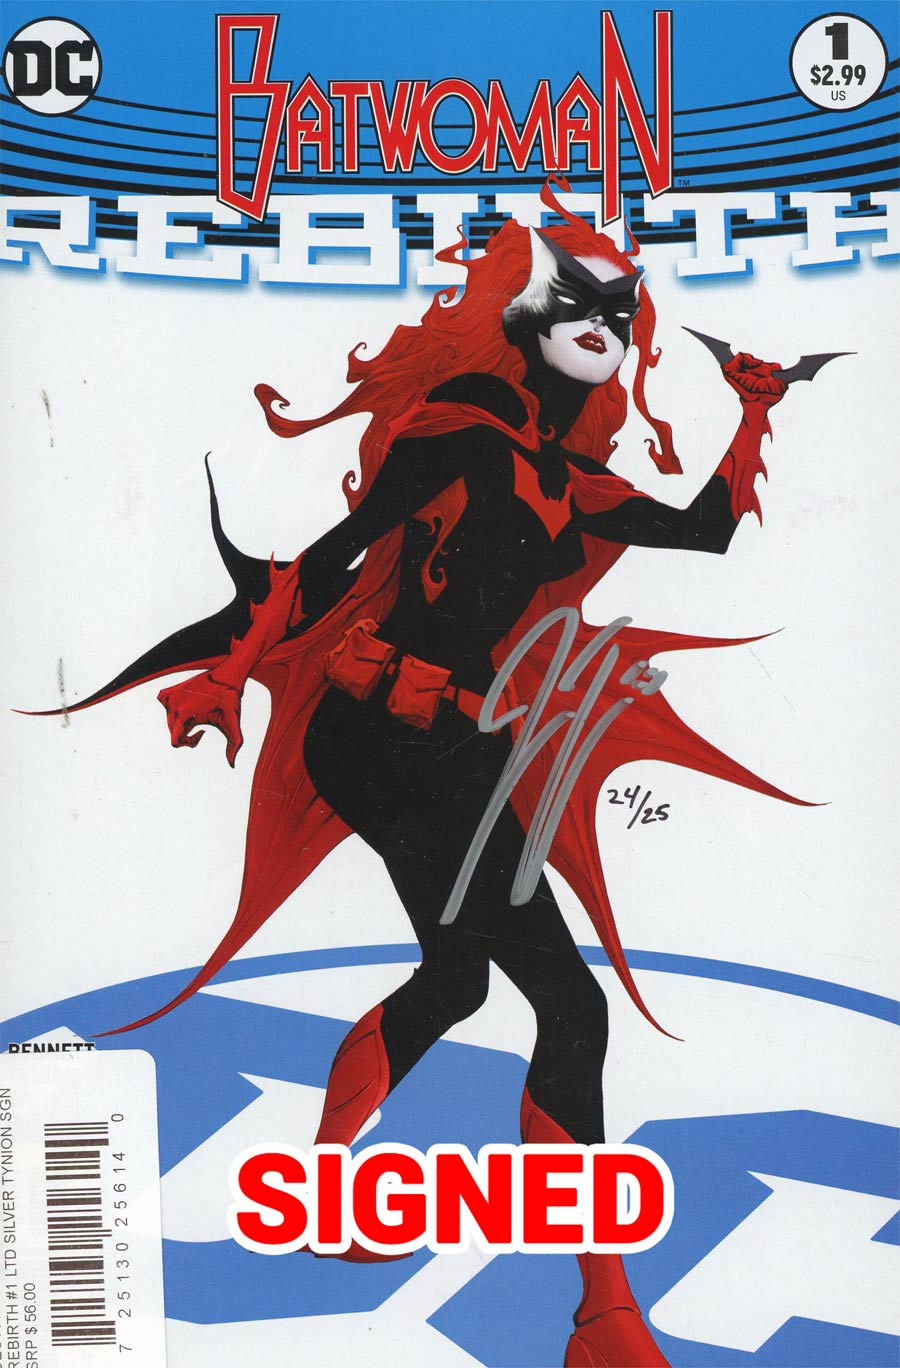 Batwoman Rebirth #1 Cover D DF Ultra-Limited Silver Signature Series Signed By James Tynion IV